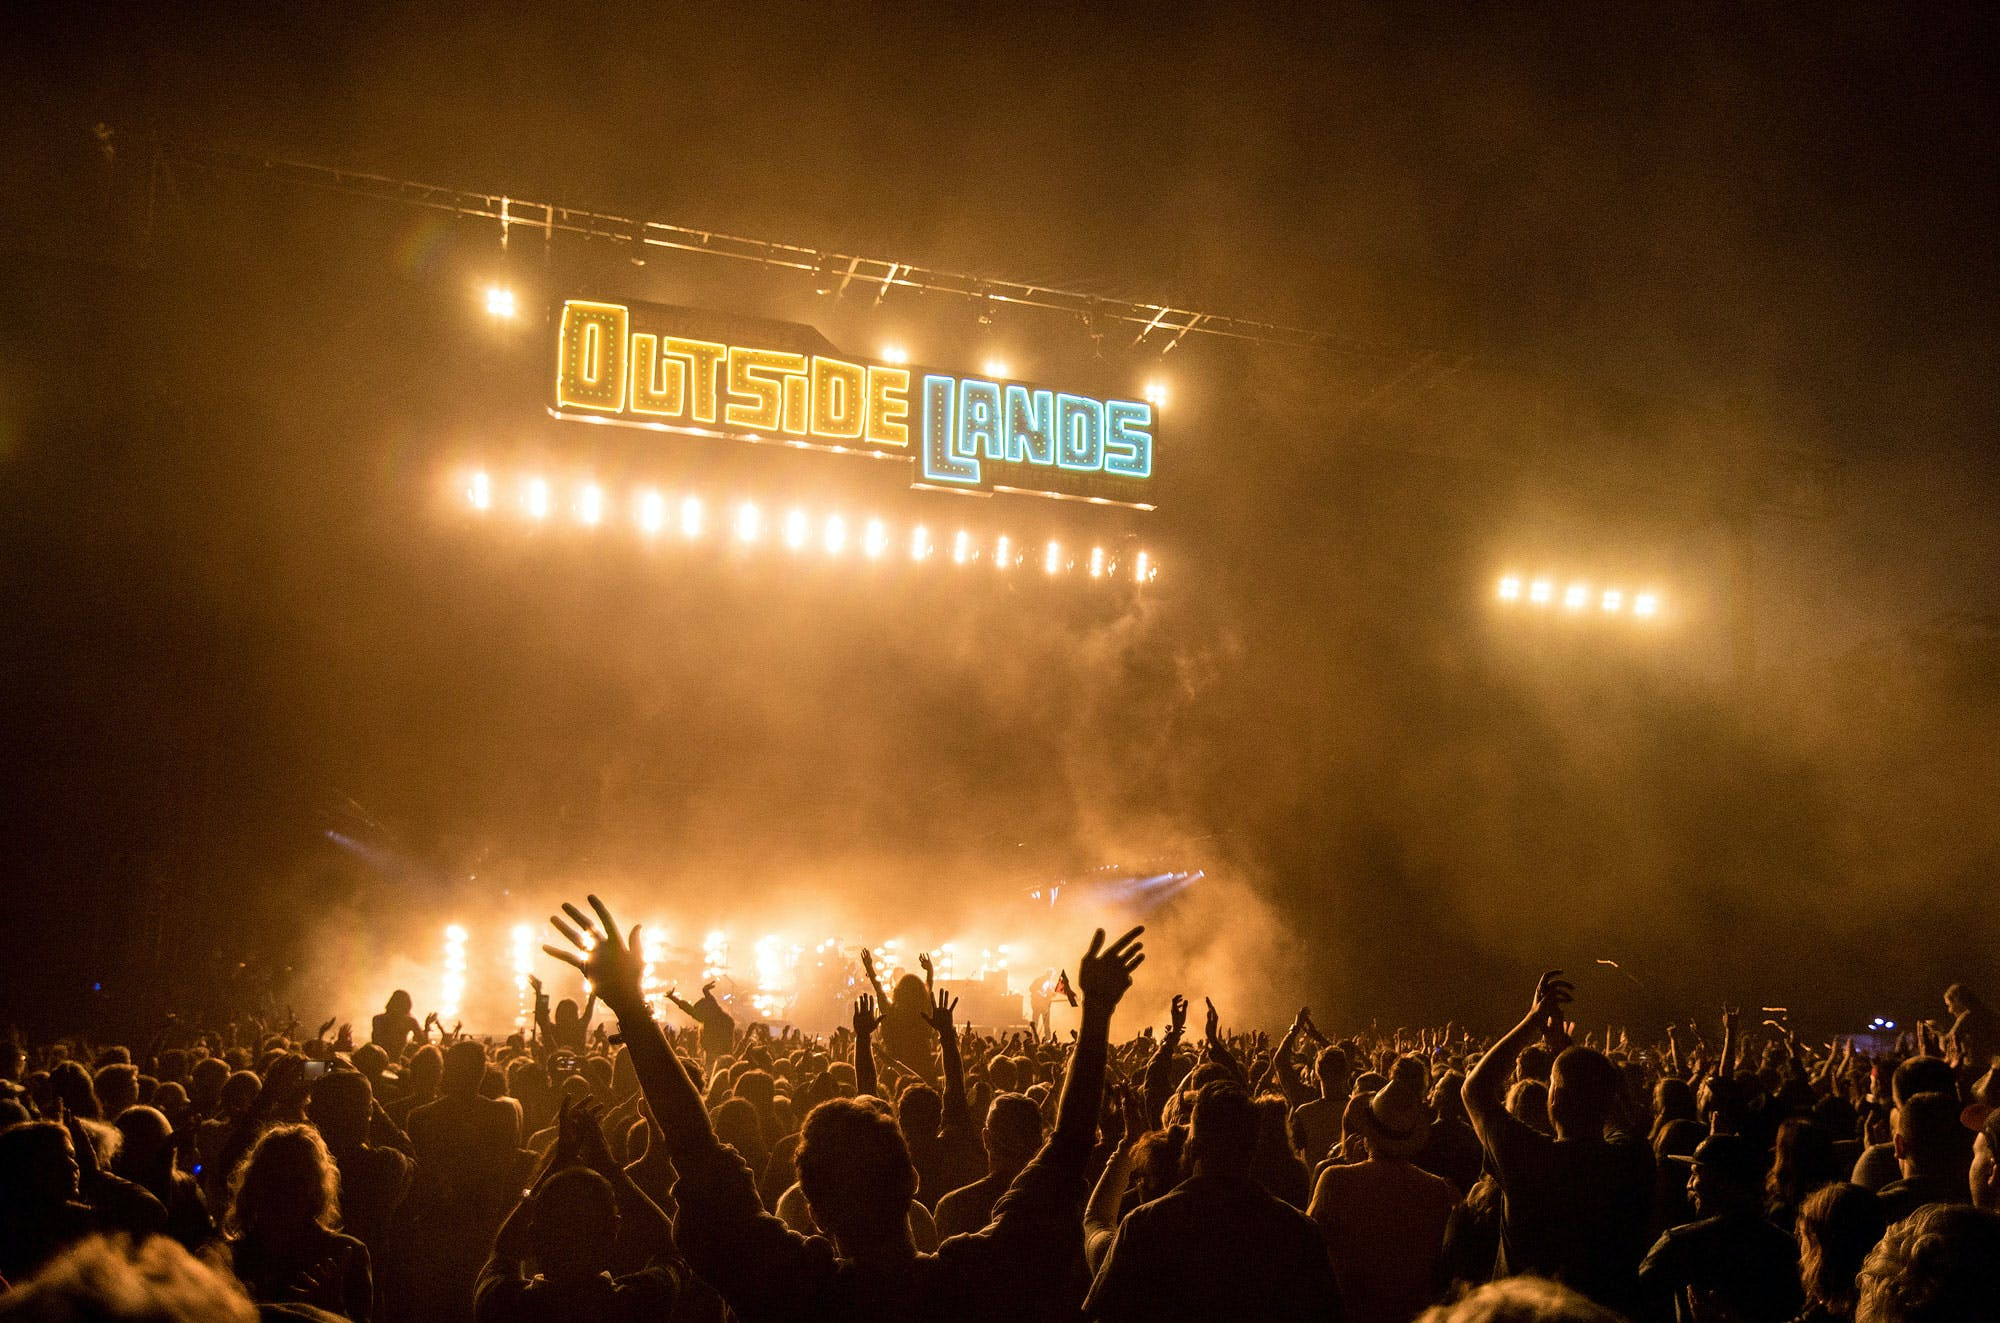 Major California Music Festival Outside Lands Welcomes the Cannabis Industry Major California Music Festival, Outside Lands, Welcomes the Cannabis Industry